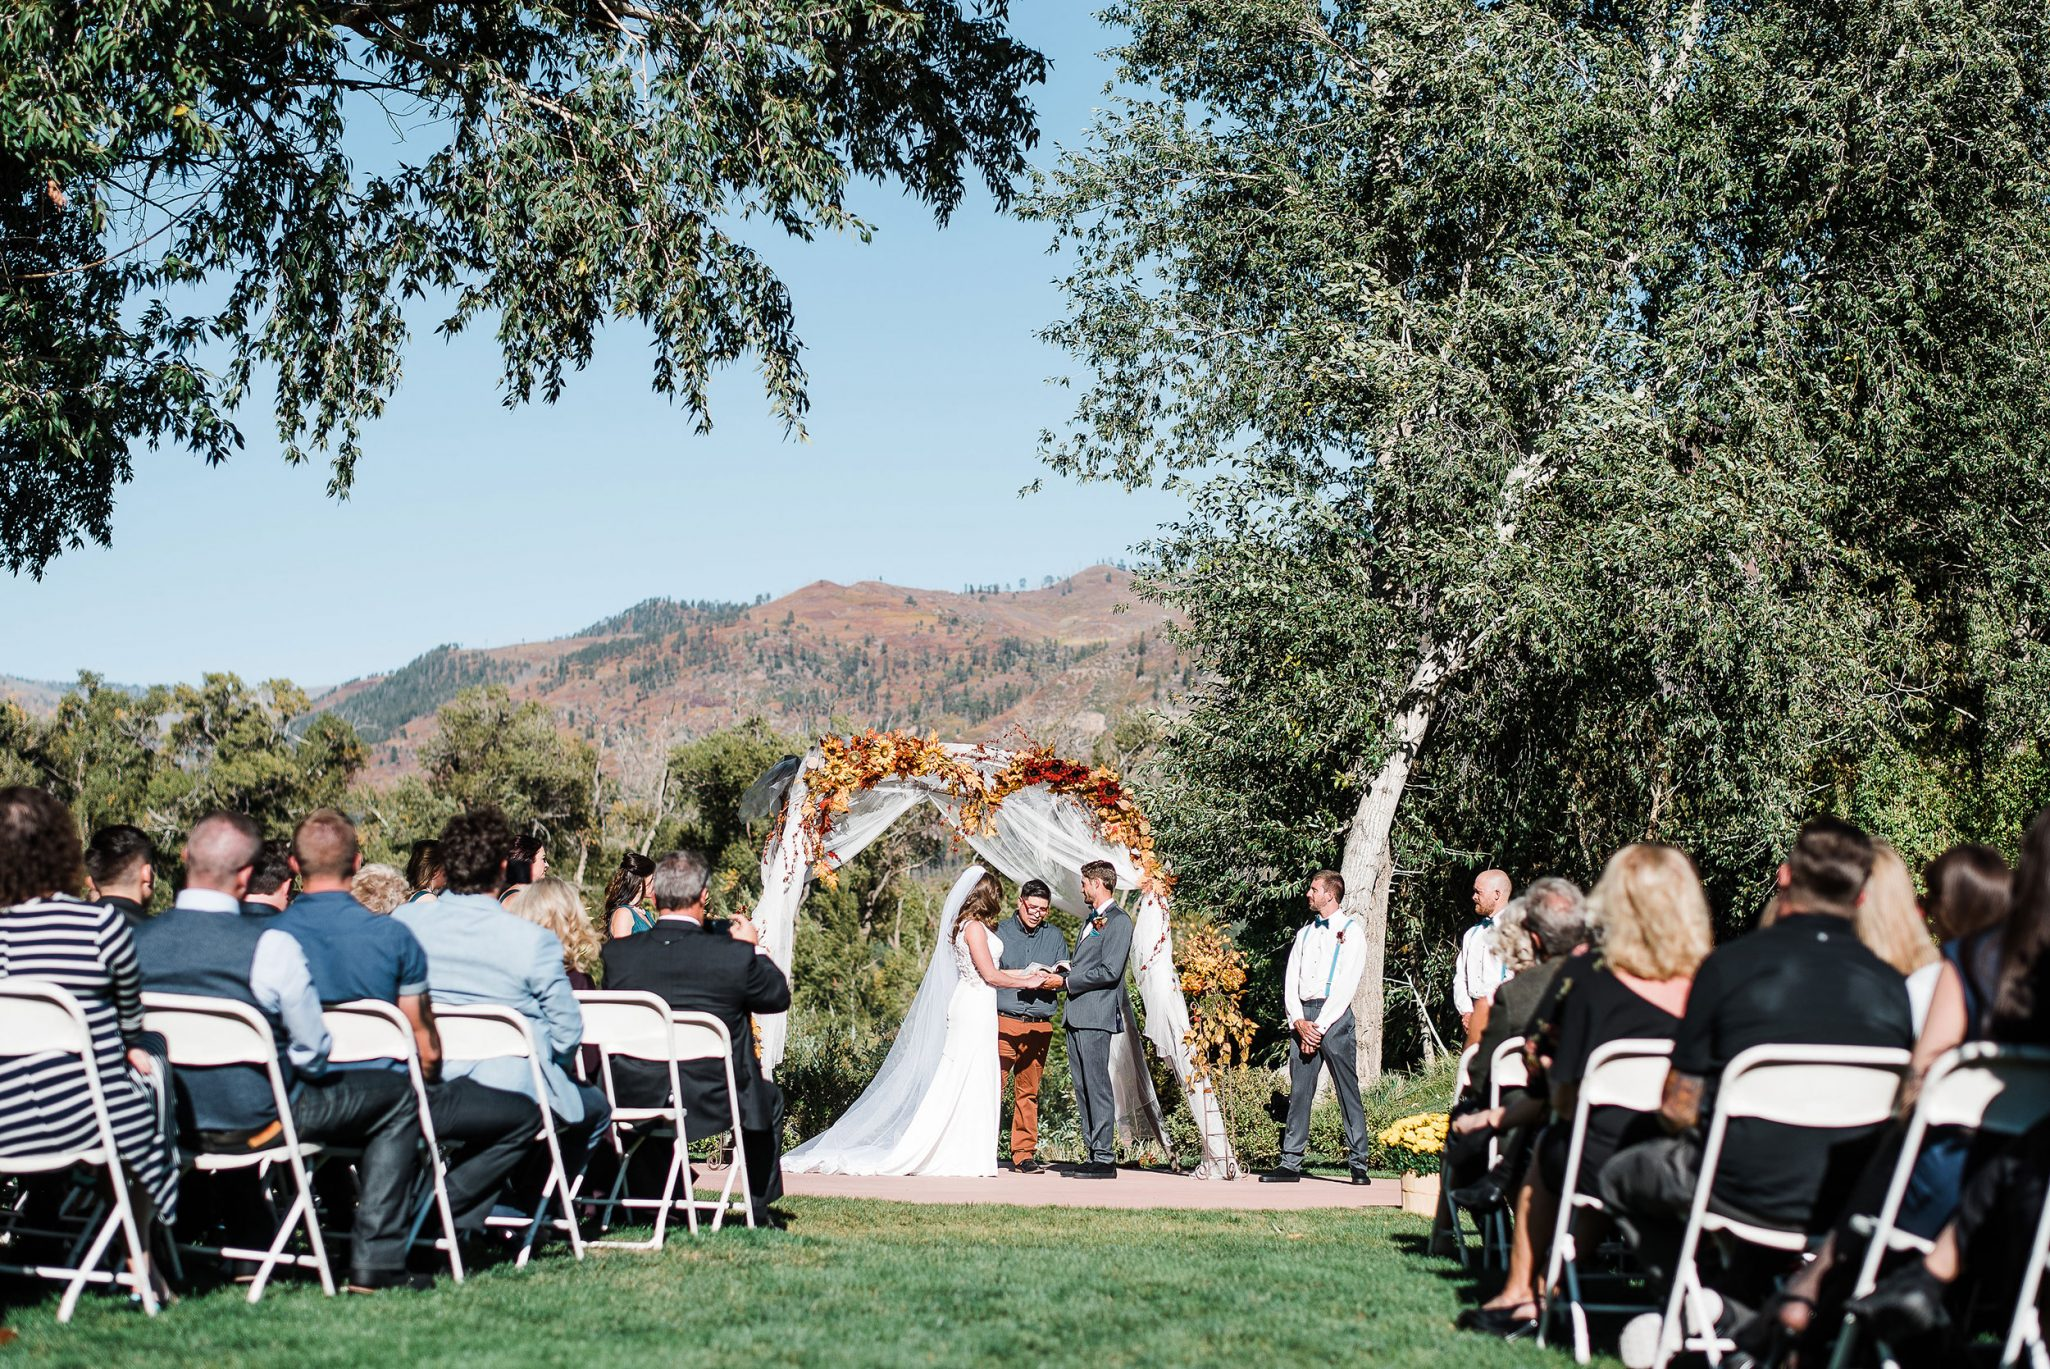 Ceremony at Dalton Ranch Golf Club, Durango Colorado